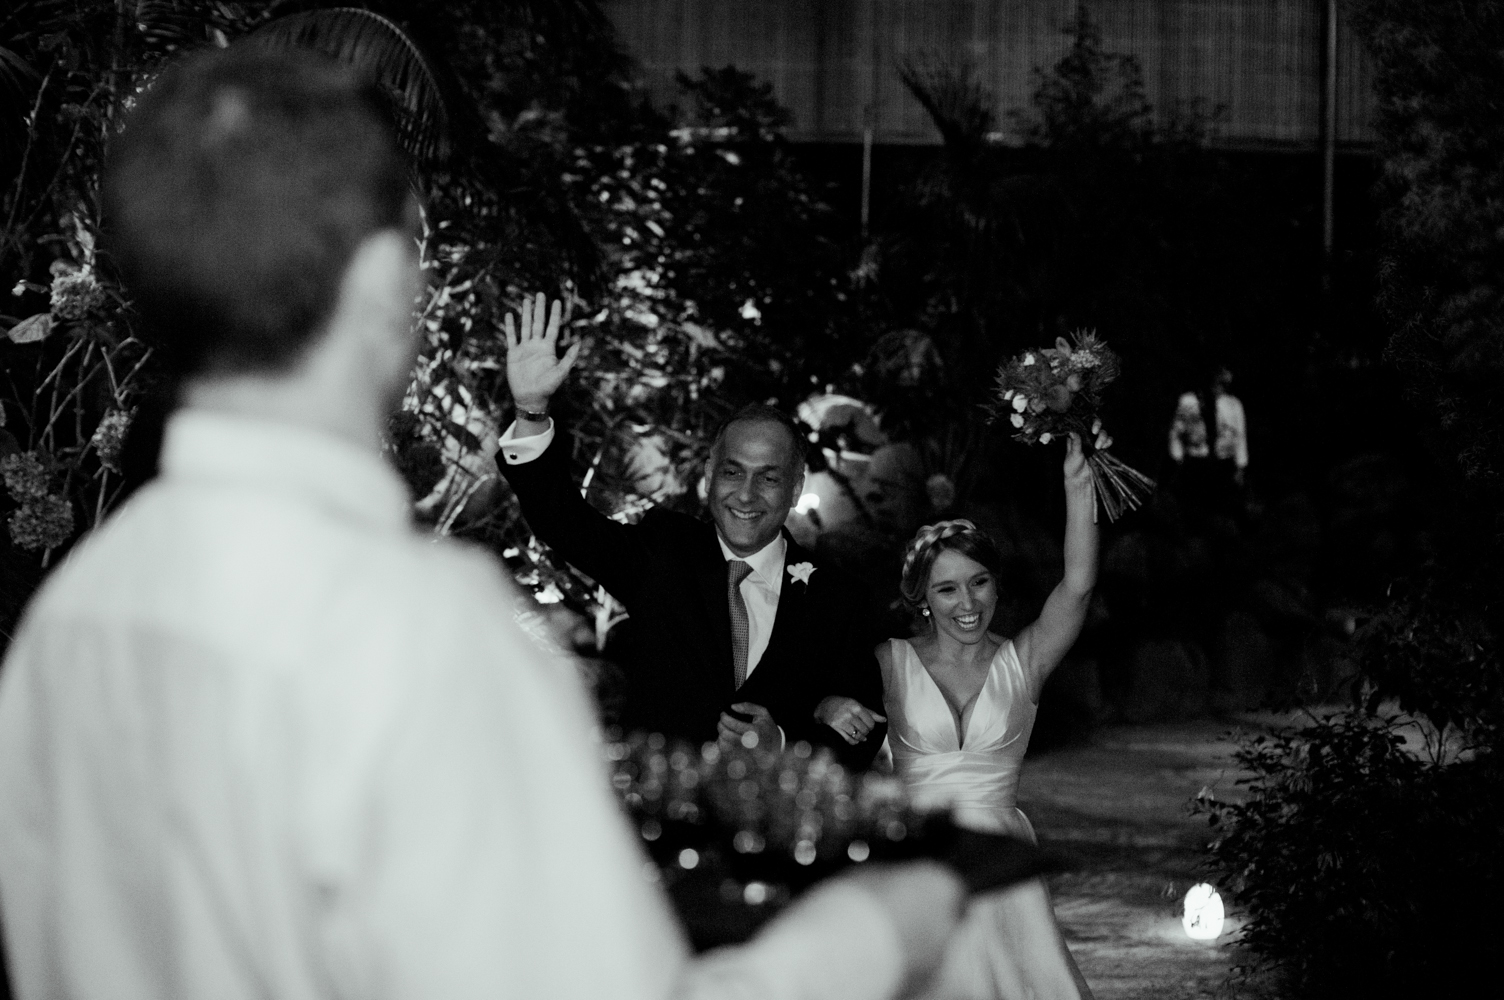 maria_rao_wedding_photographer_Portugal-73.jpg